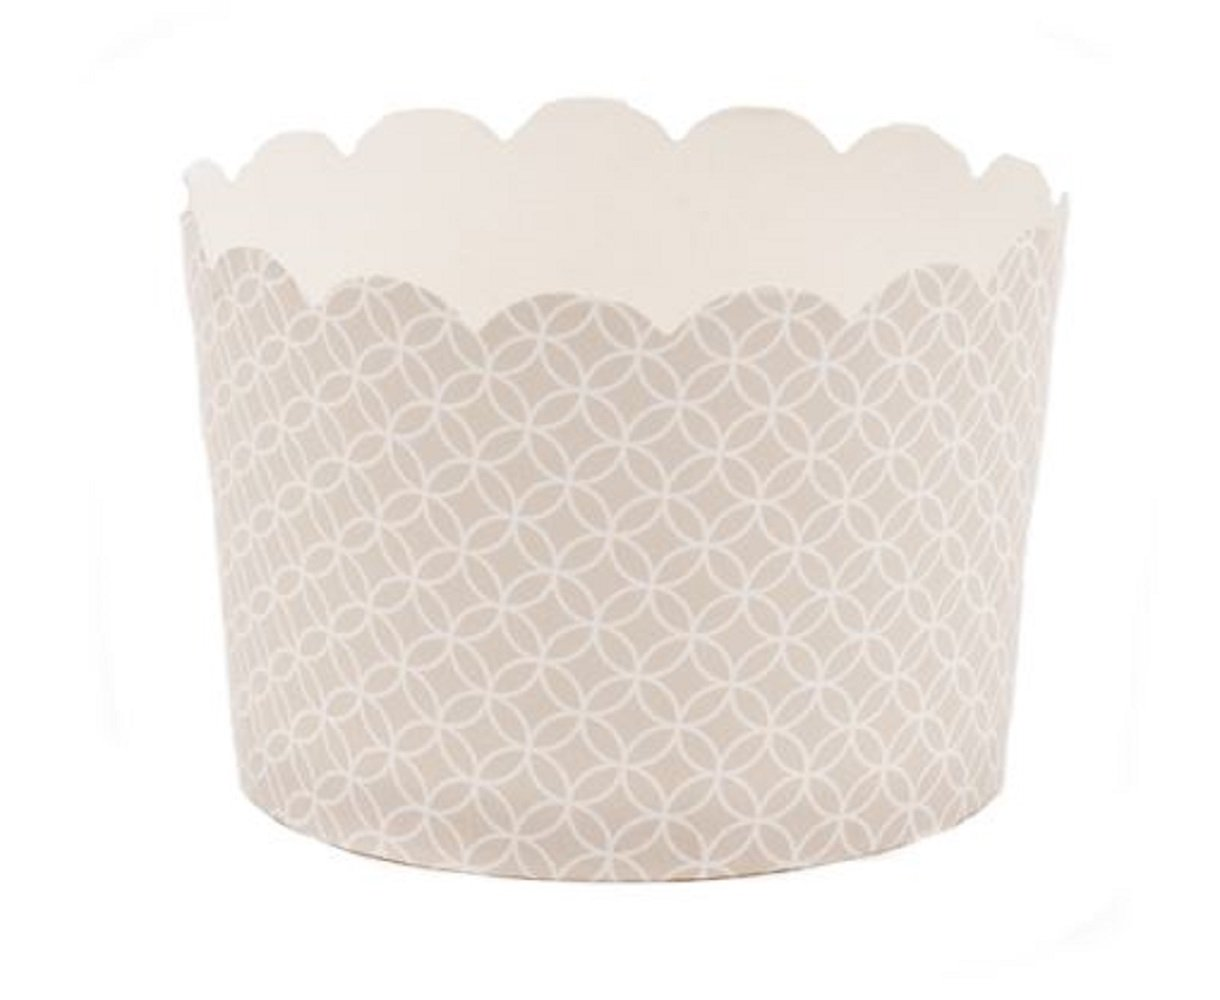 Simply Baked CJB-103 Jumbo Cup (20 Pack), Pearl Medallion